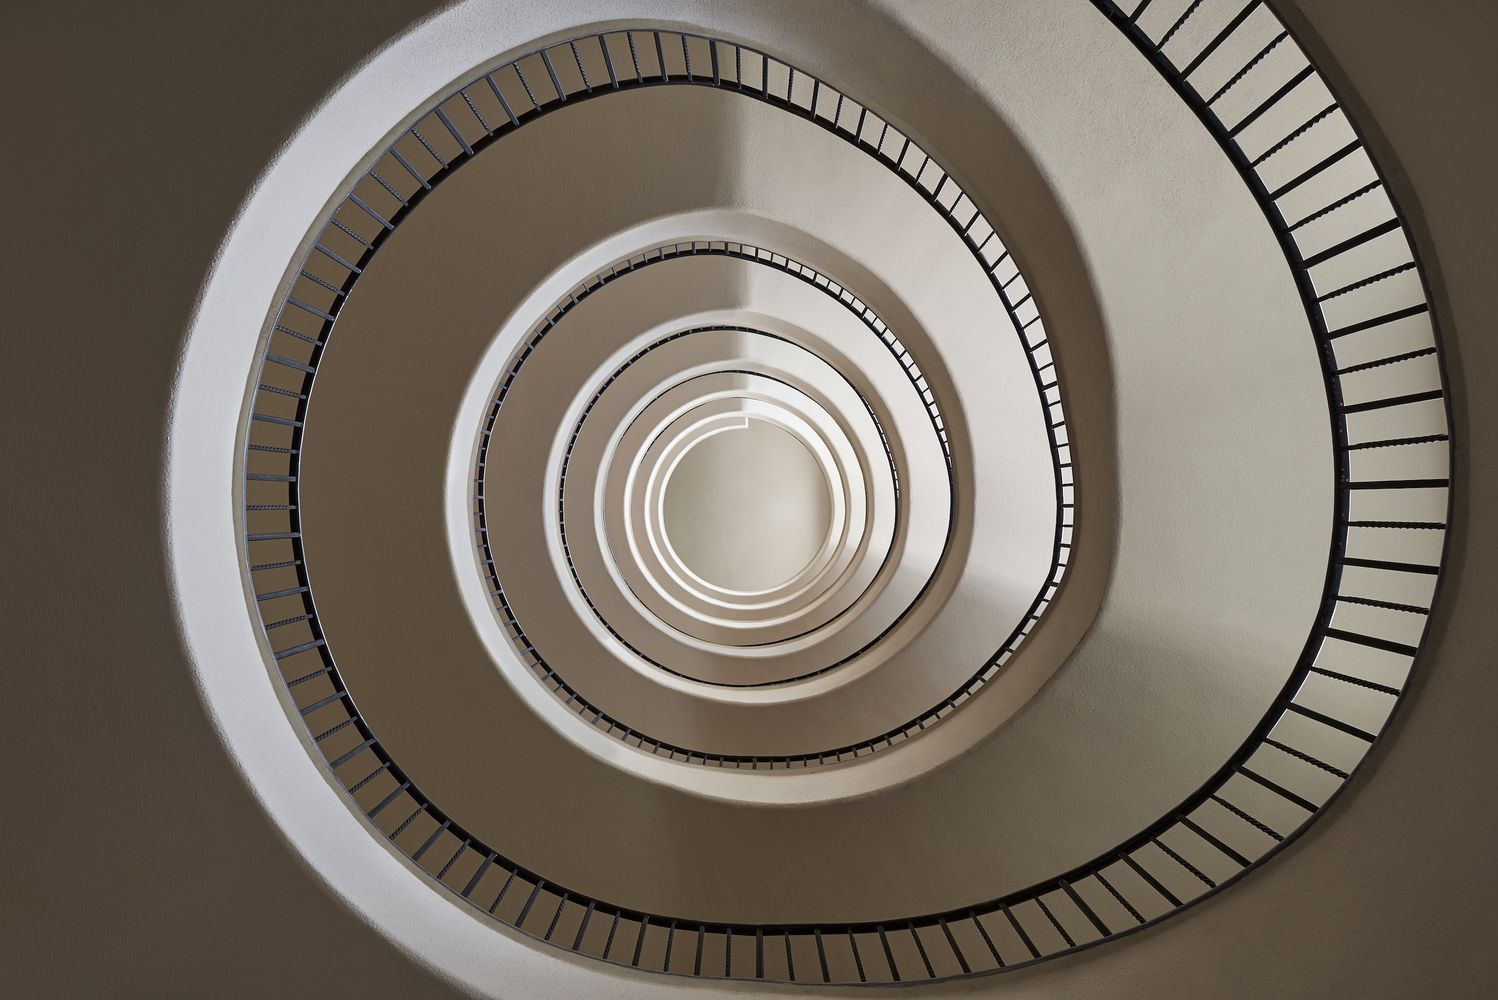 Gallery of Explore Budapest's Art Deco and Bauhaus Staircases Through This Photo Series - 7